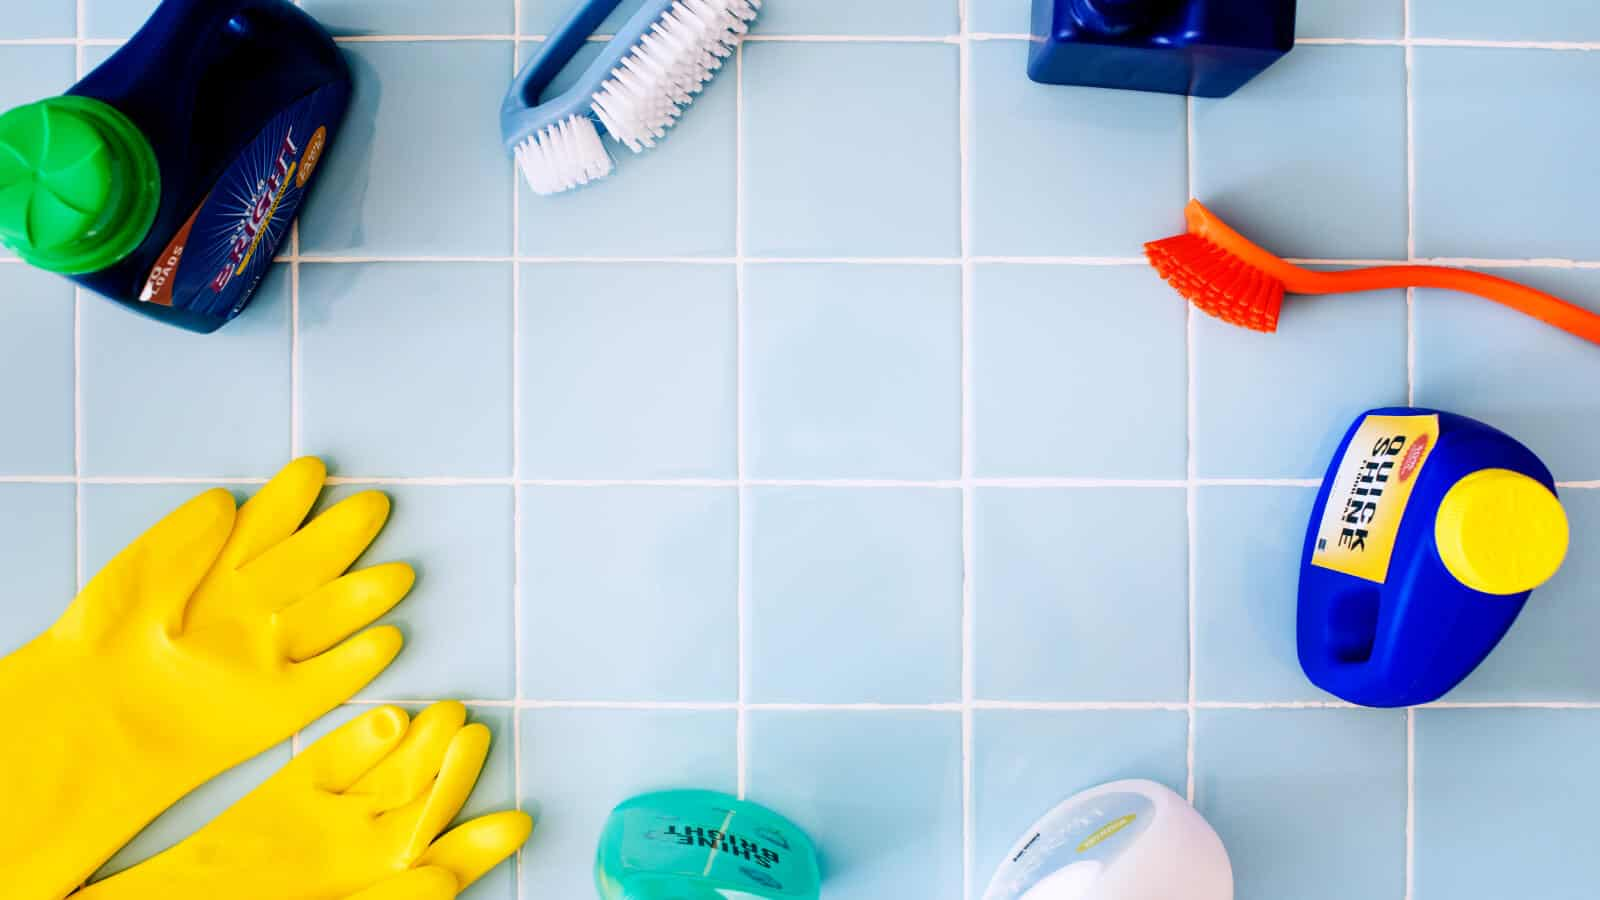 House cleaning business equipment